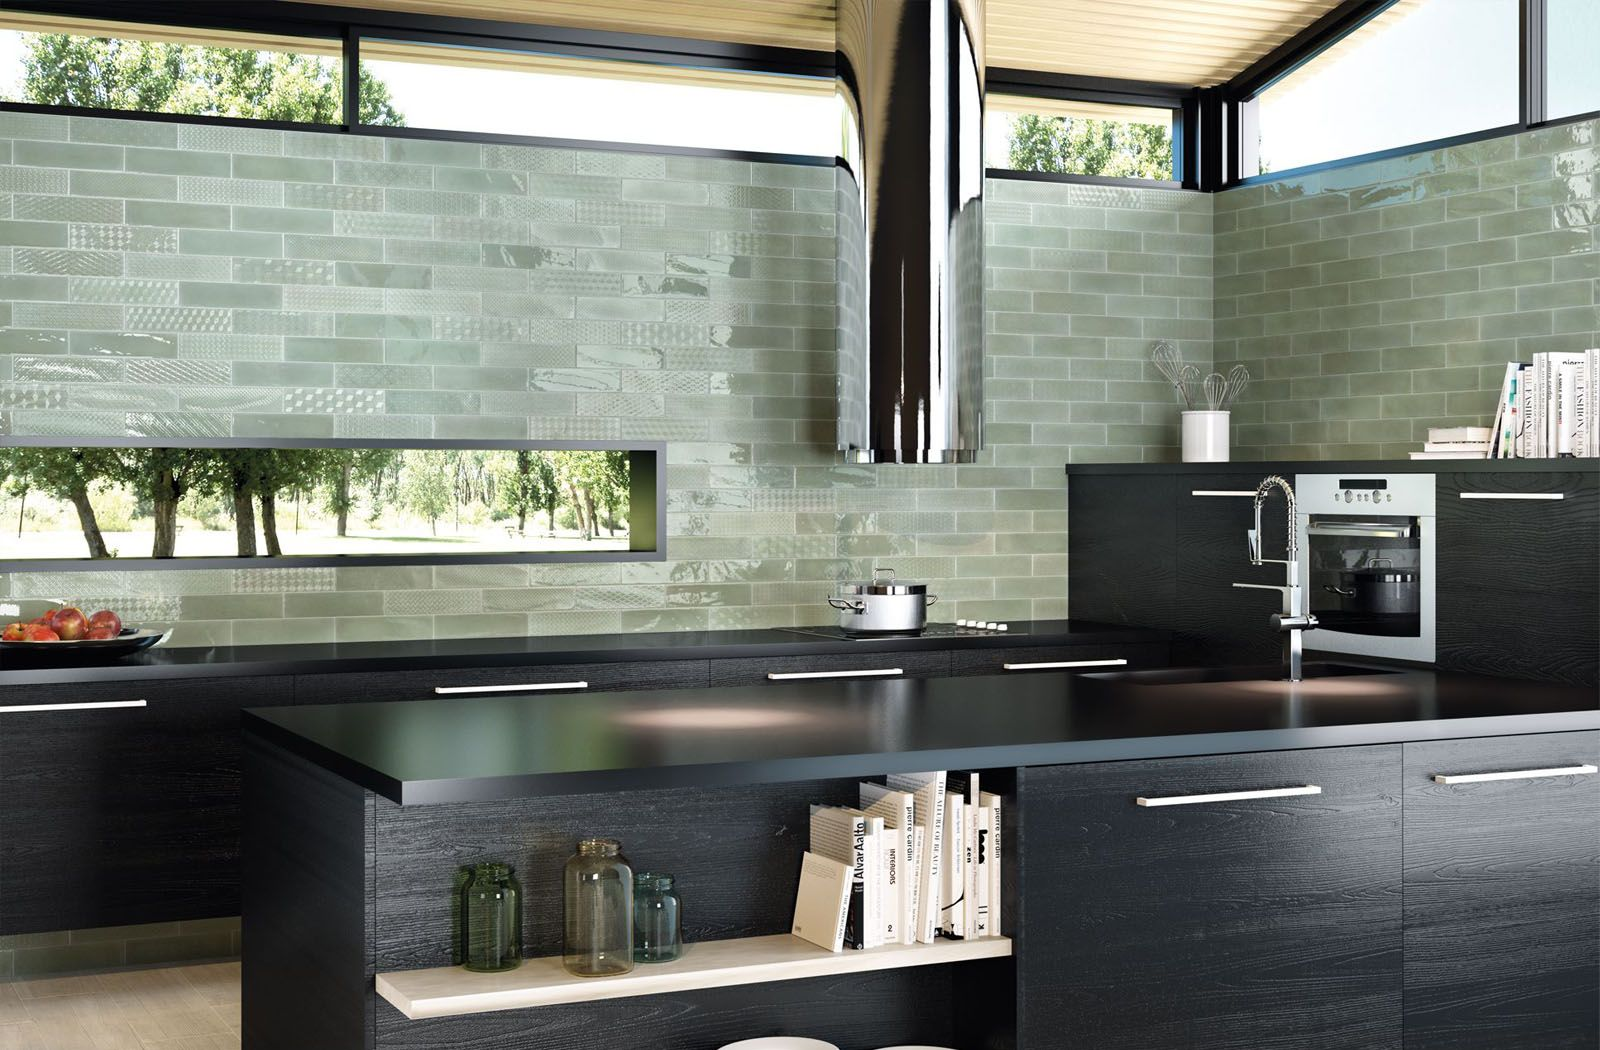 Kitchen backsplash decor ideas with Opal tiles from Cifre